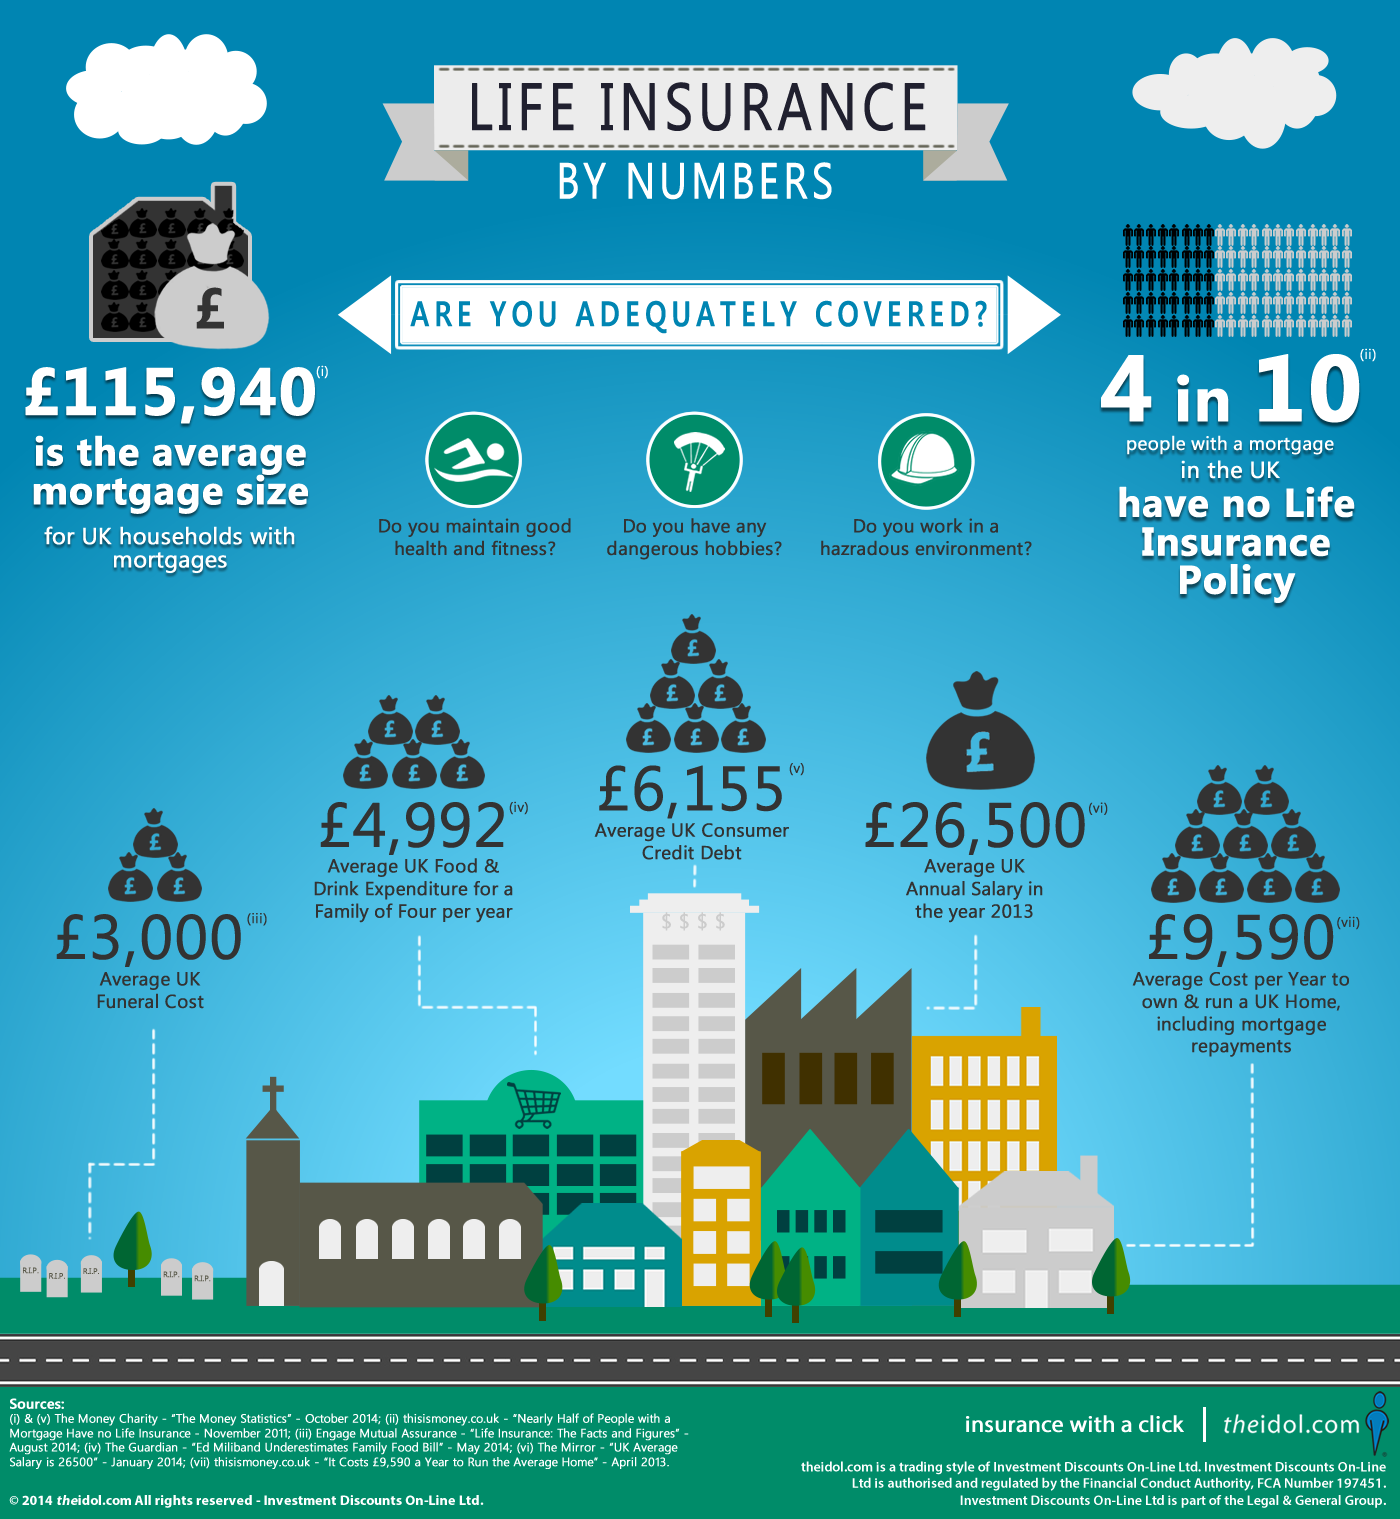 UK Life Insurance by Numbers by Theidol.com